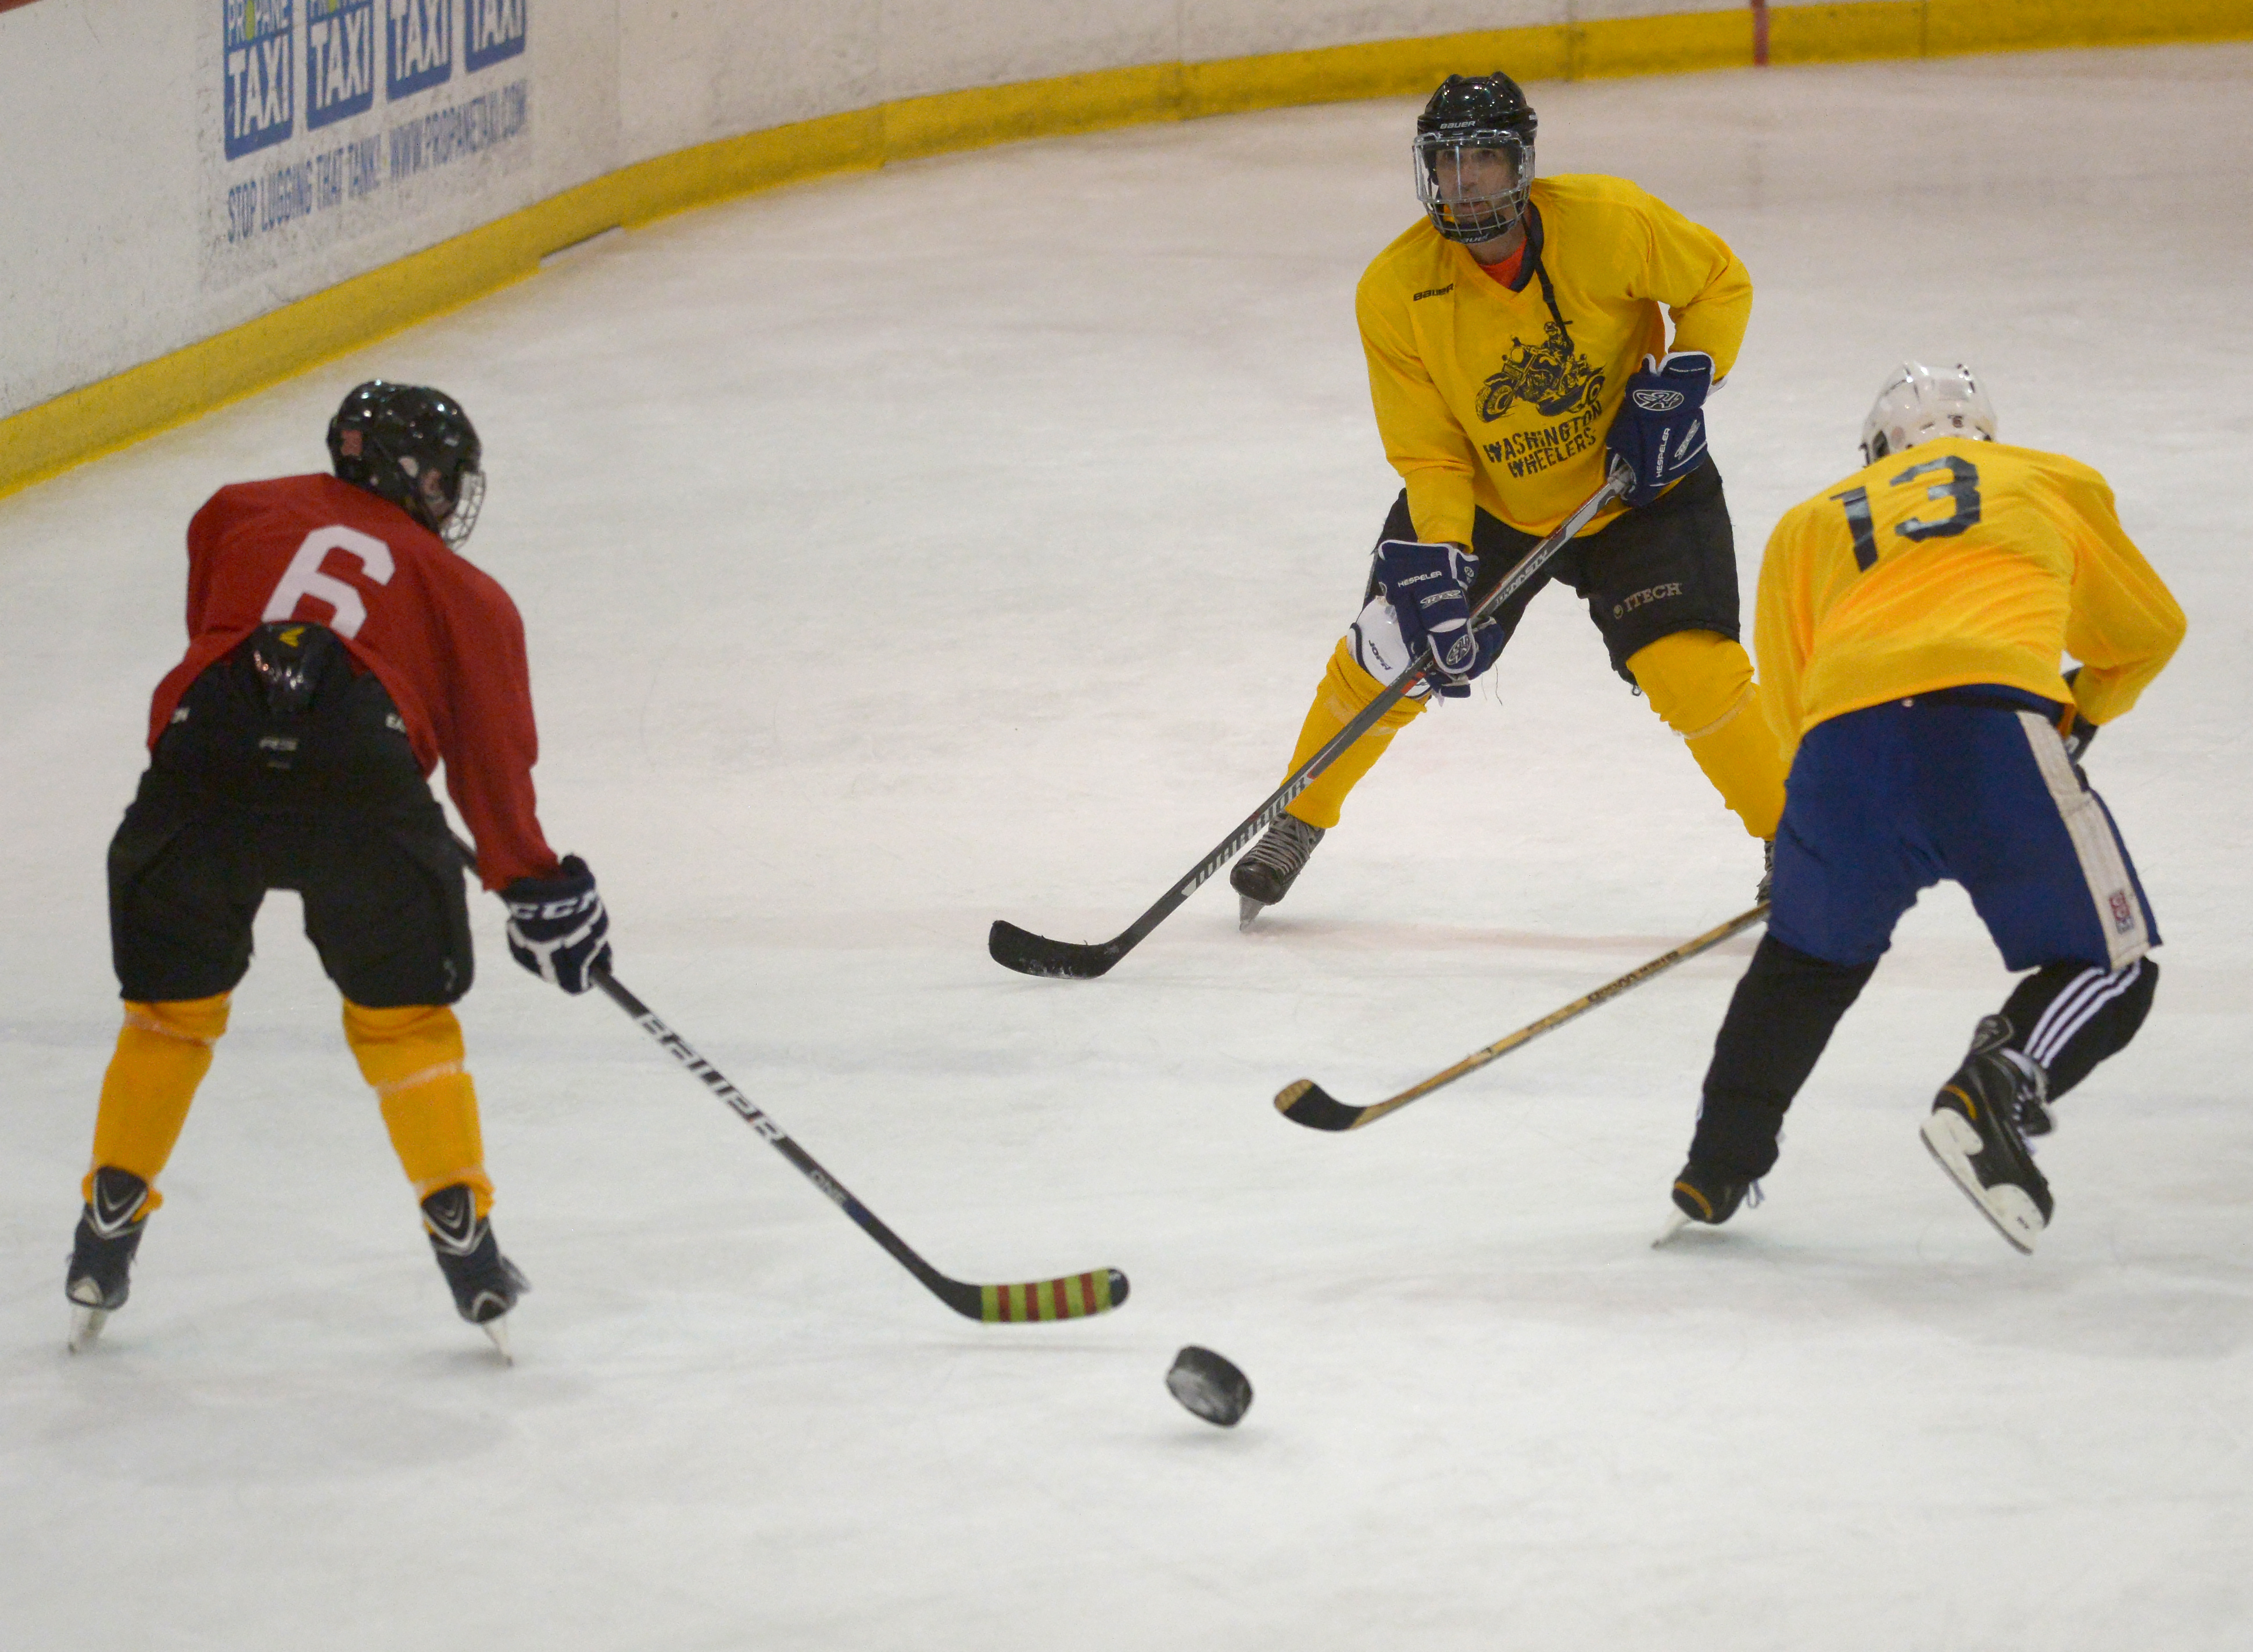 ae6386d8c They can't see, but blind hockey players can pass, shoot and score - The  Washington Post